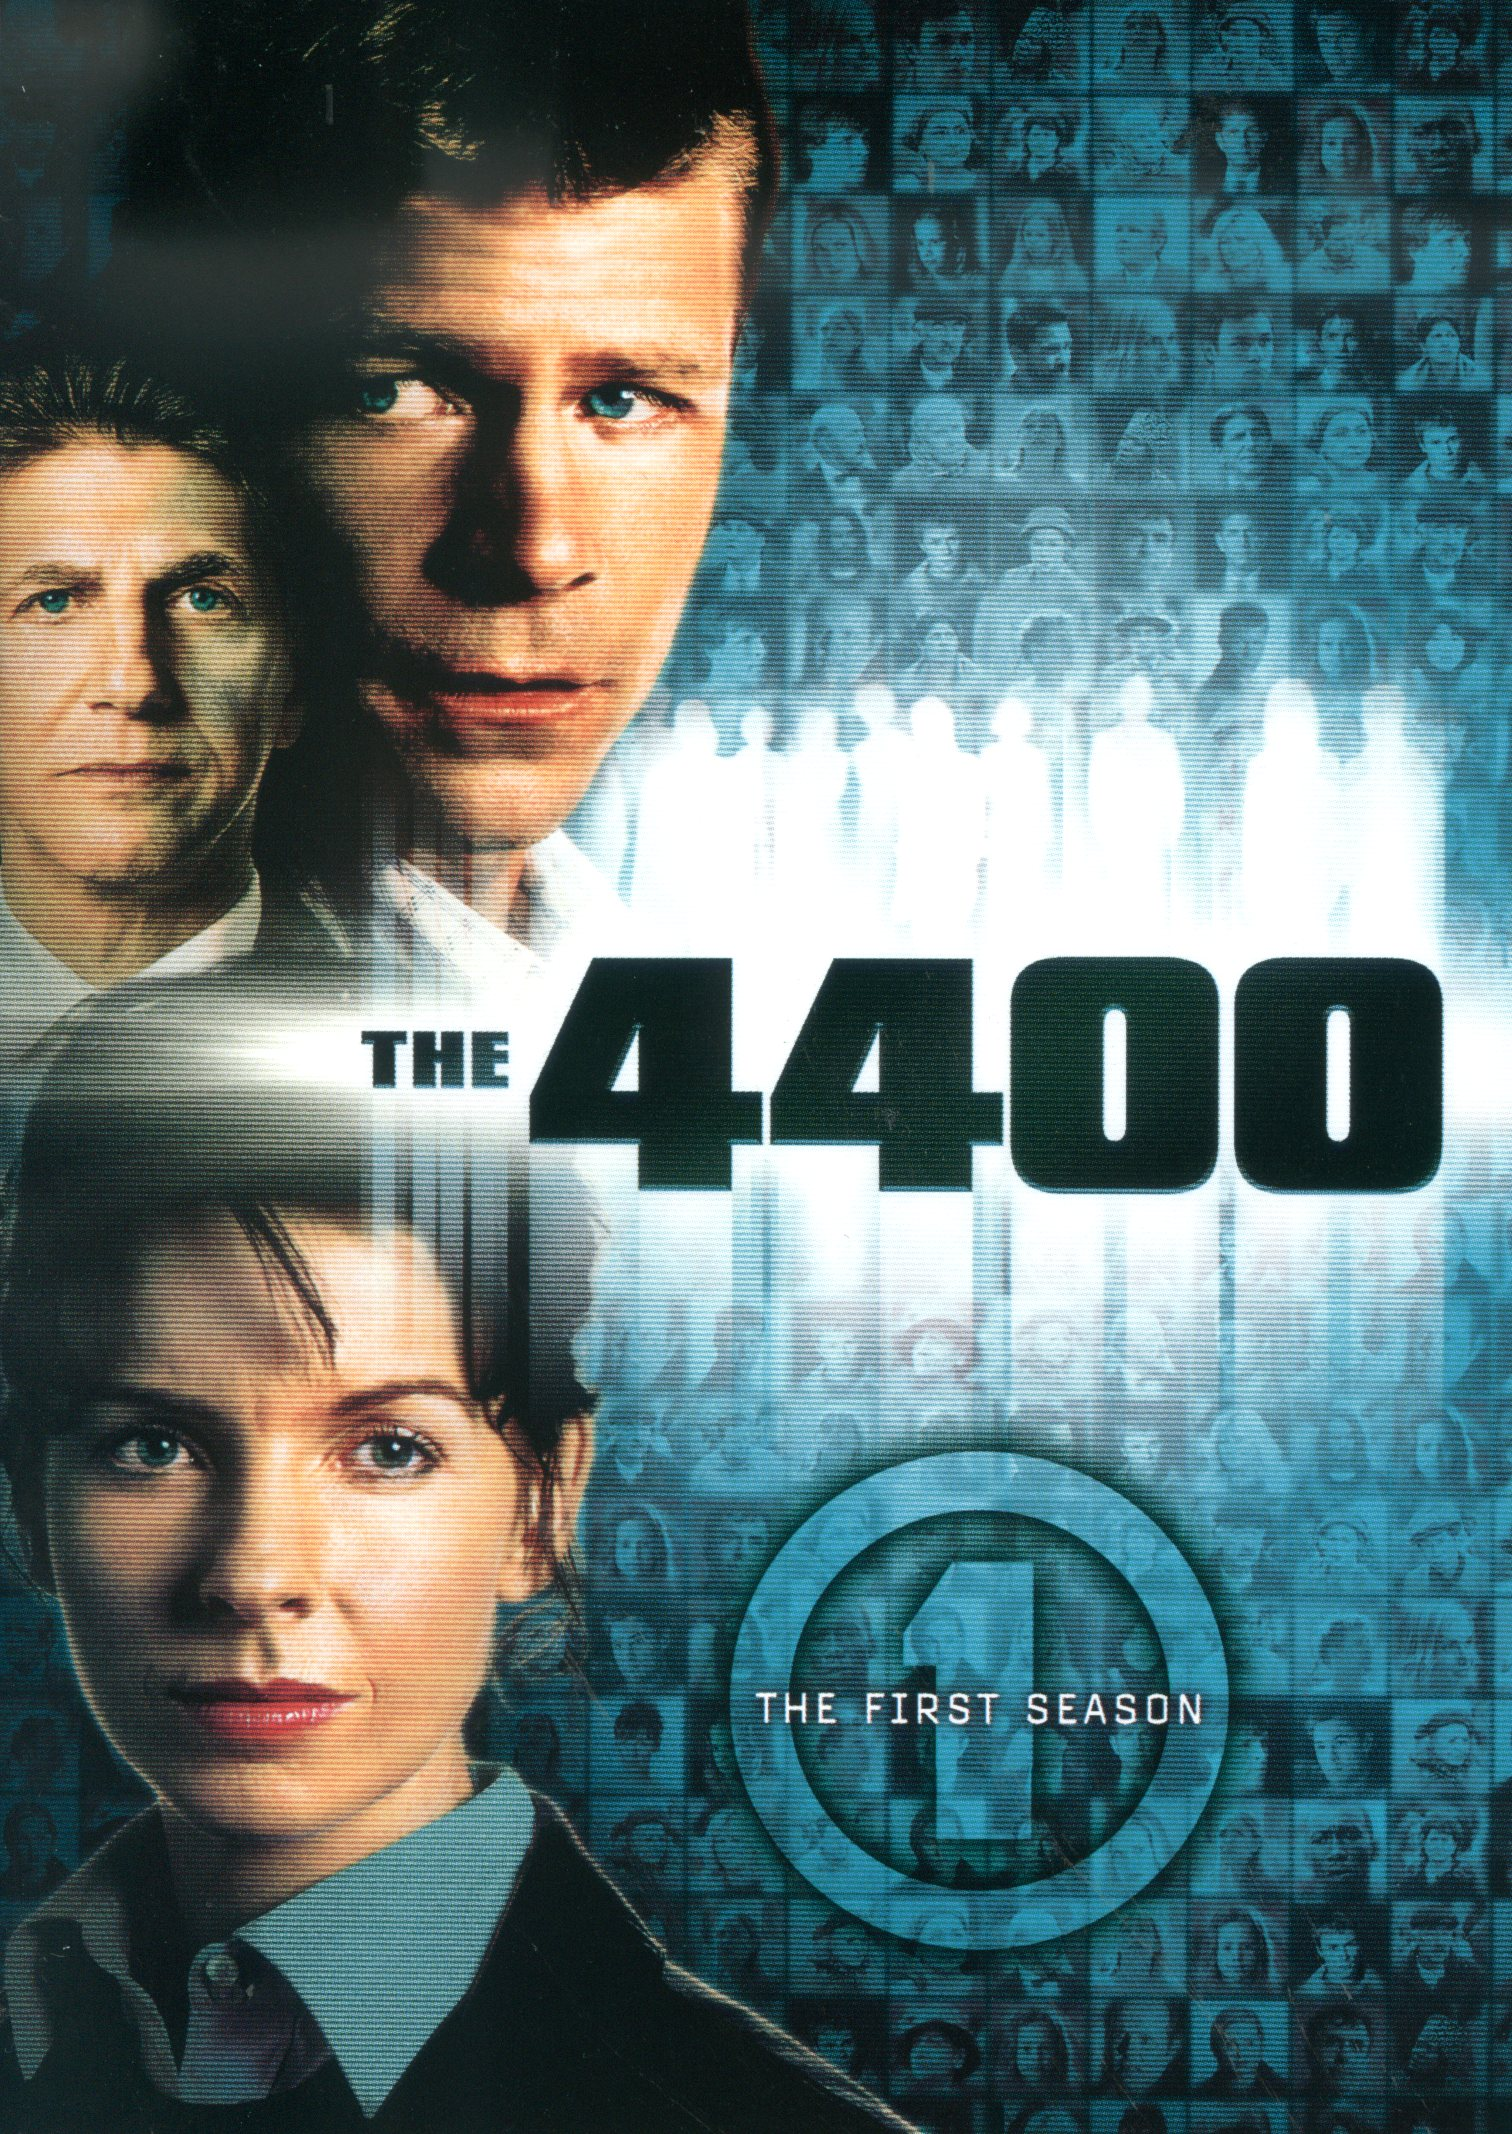 The 4400(家用版) The first season.